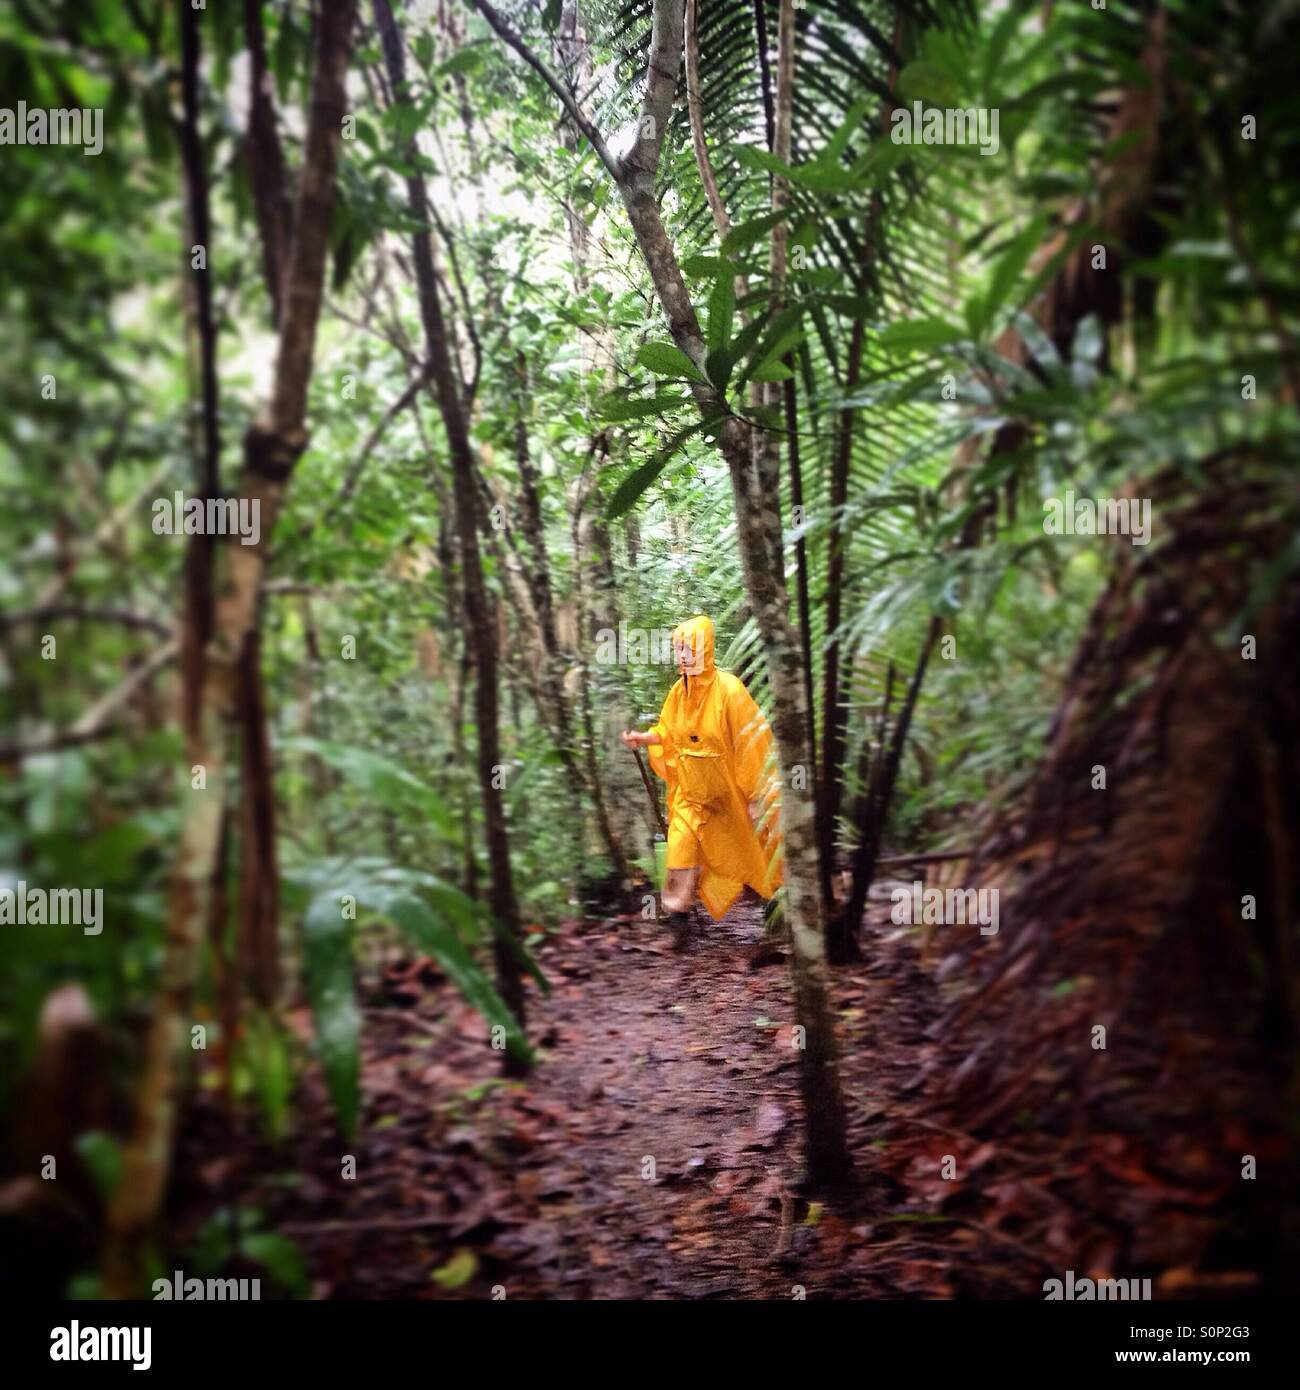 A tourist walks in a trail in the forest near Chechen Ha cave, Cayo, Belize - Stock Image